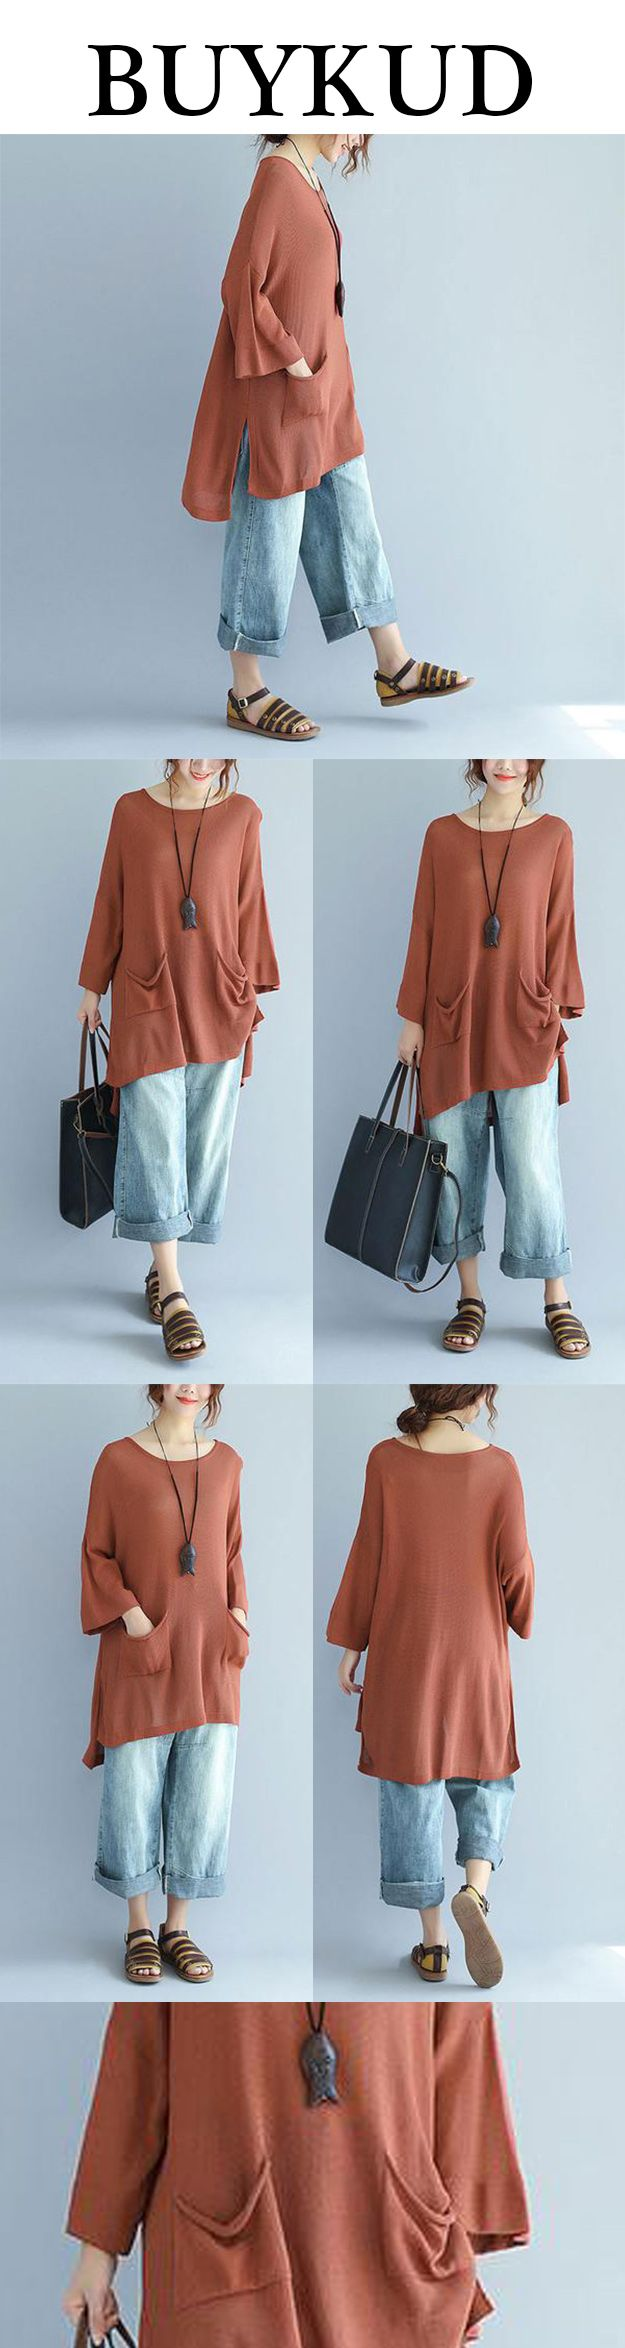 Irregular long shirt and blue jeans, can really be in!